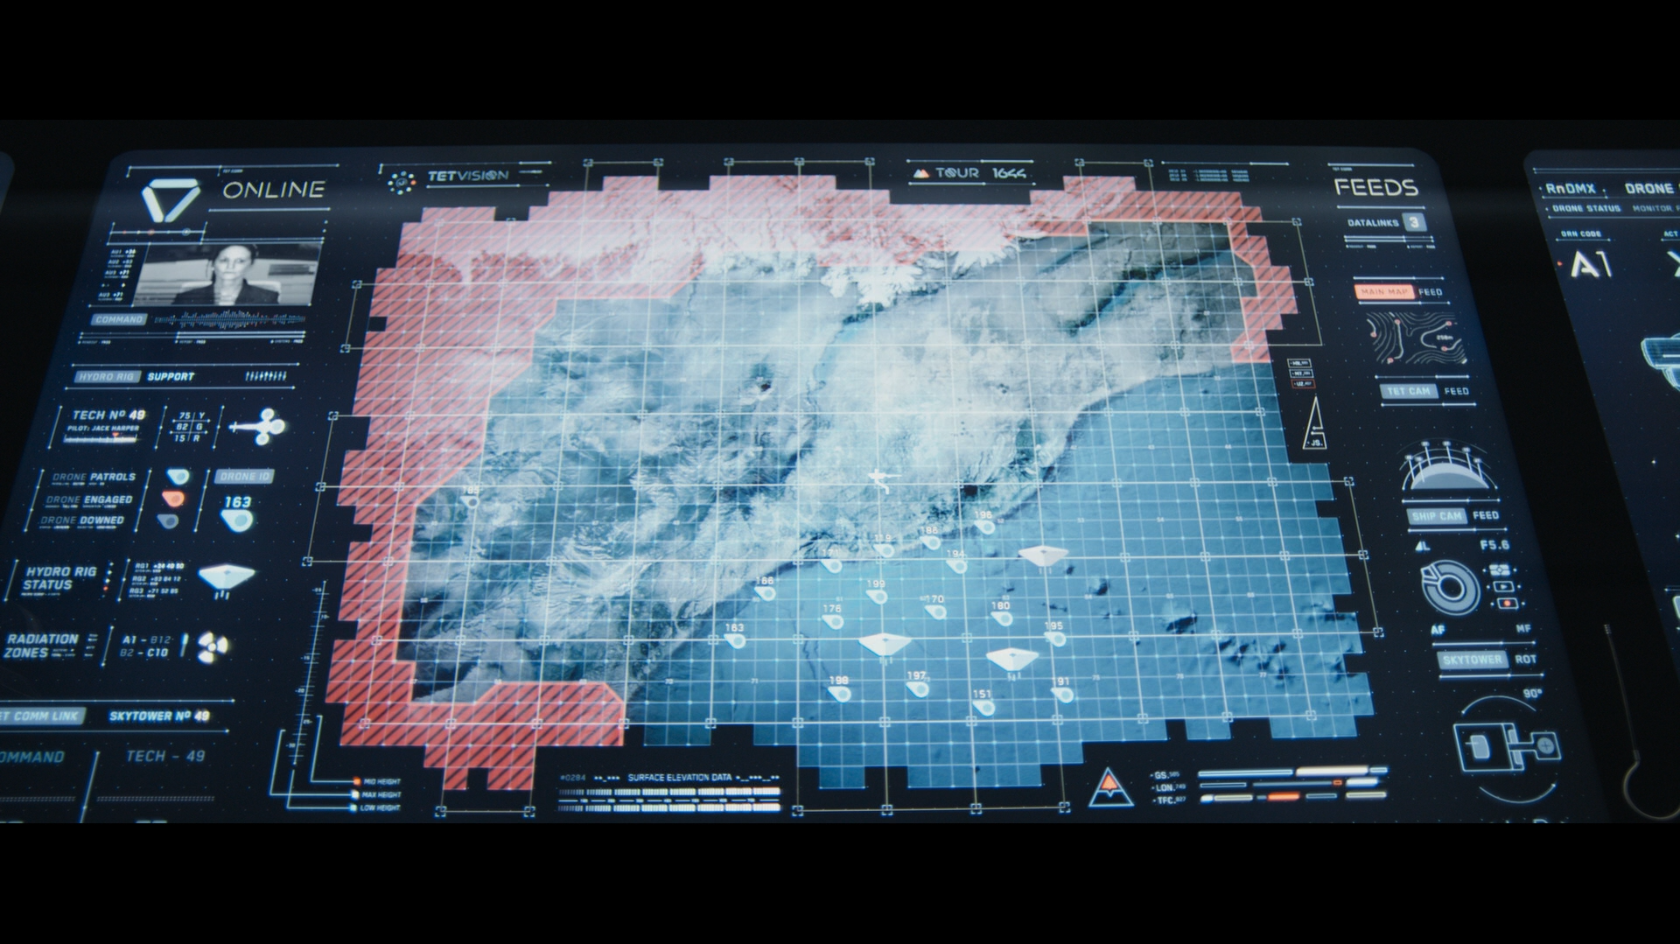 Large touch-based light table from the movie Oblivion cropped in to data that is showing alerts. The interface design in Oblivion is complex and detailed.